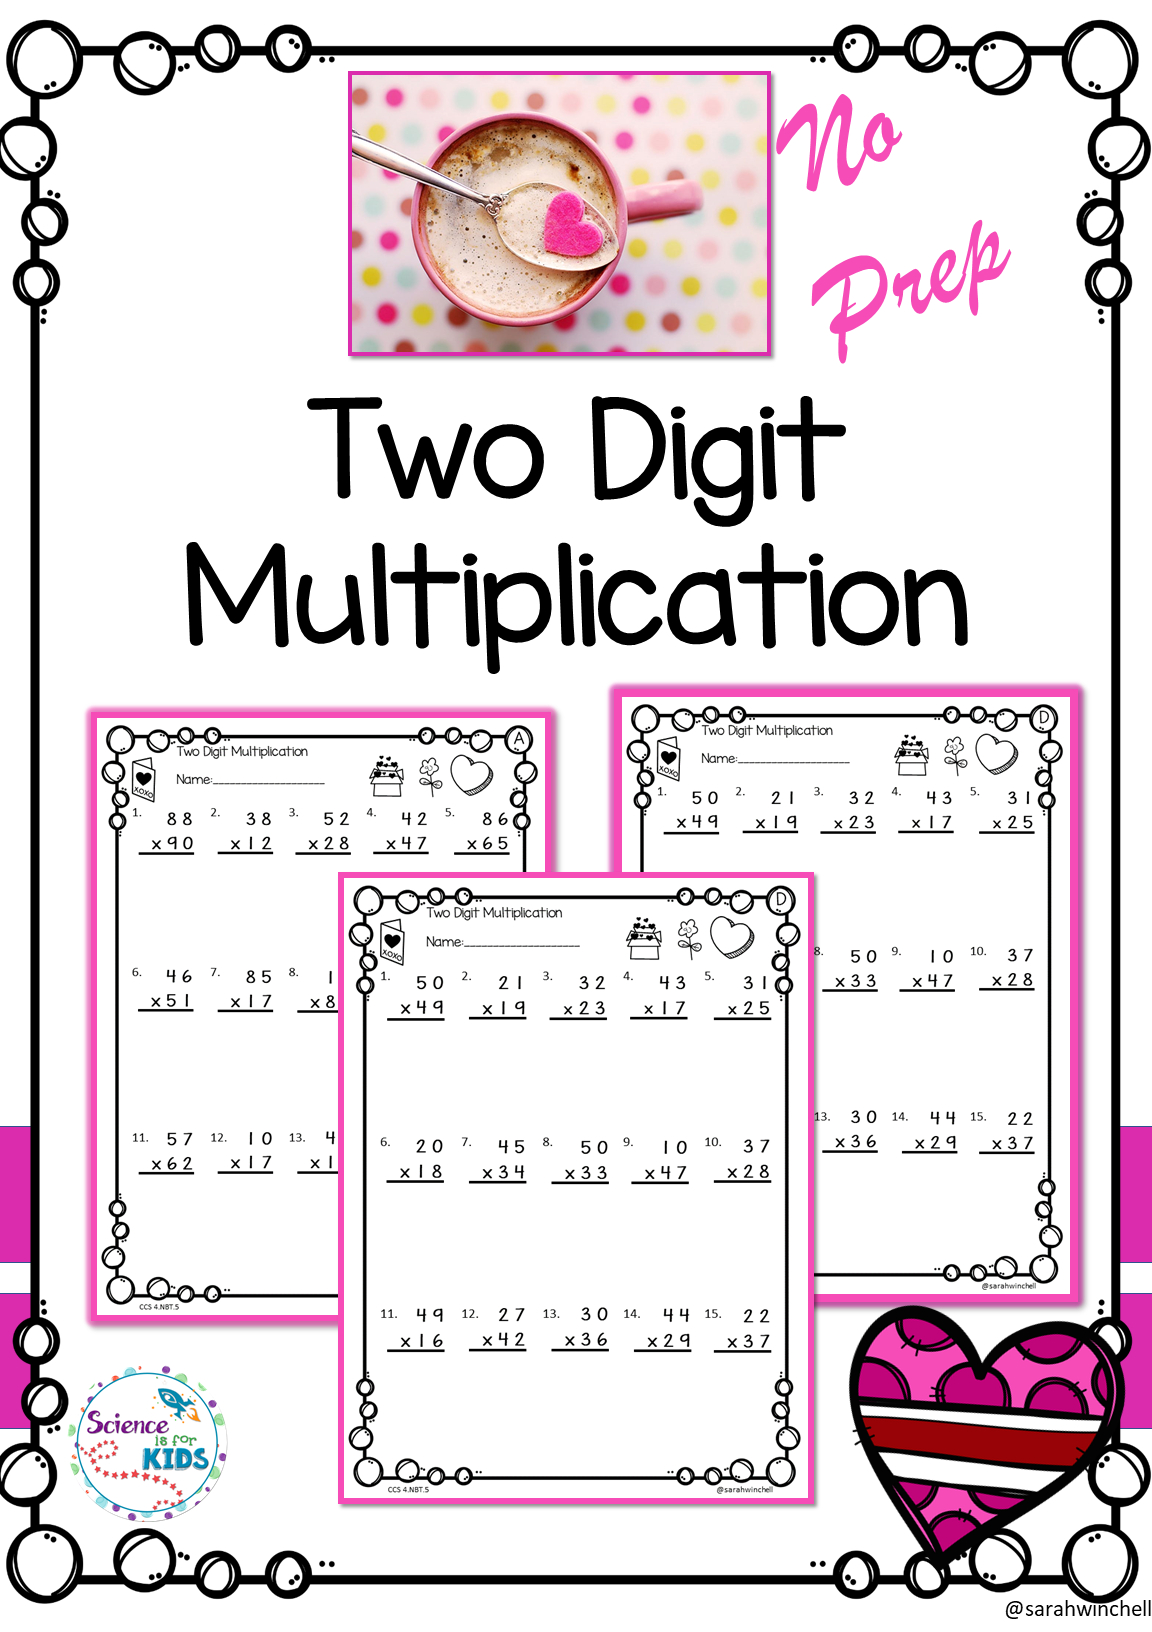 Valentines Day Activities Math Worksheets Multiplication throughout Multiplication Worksheets Valentines